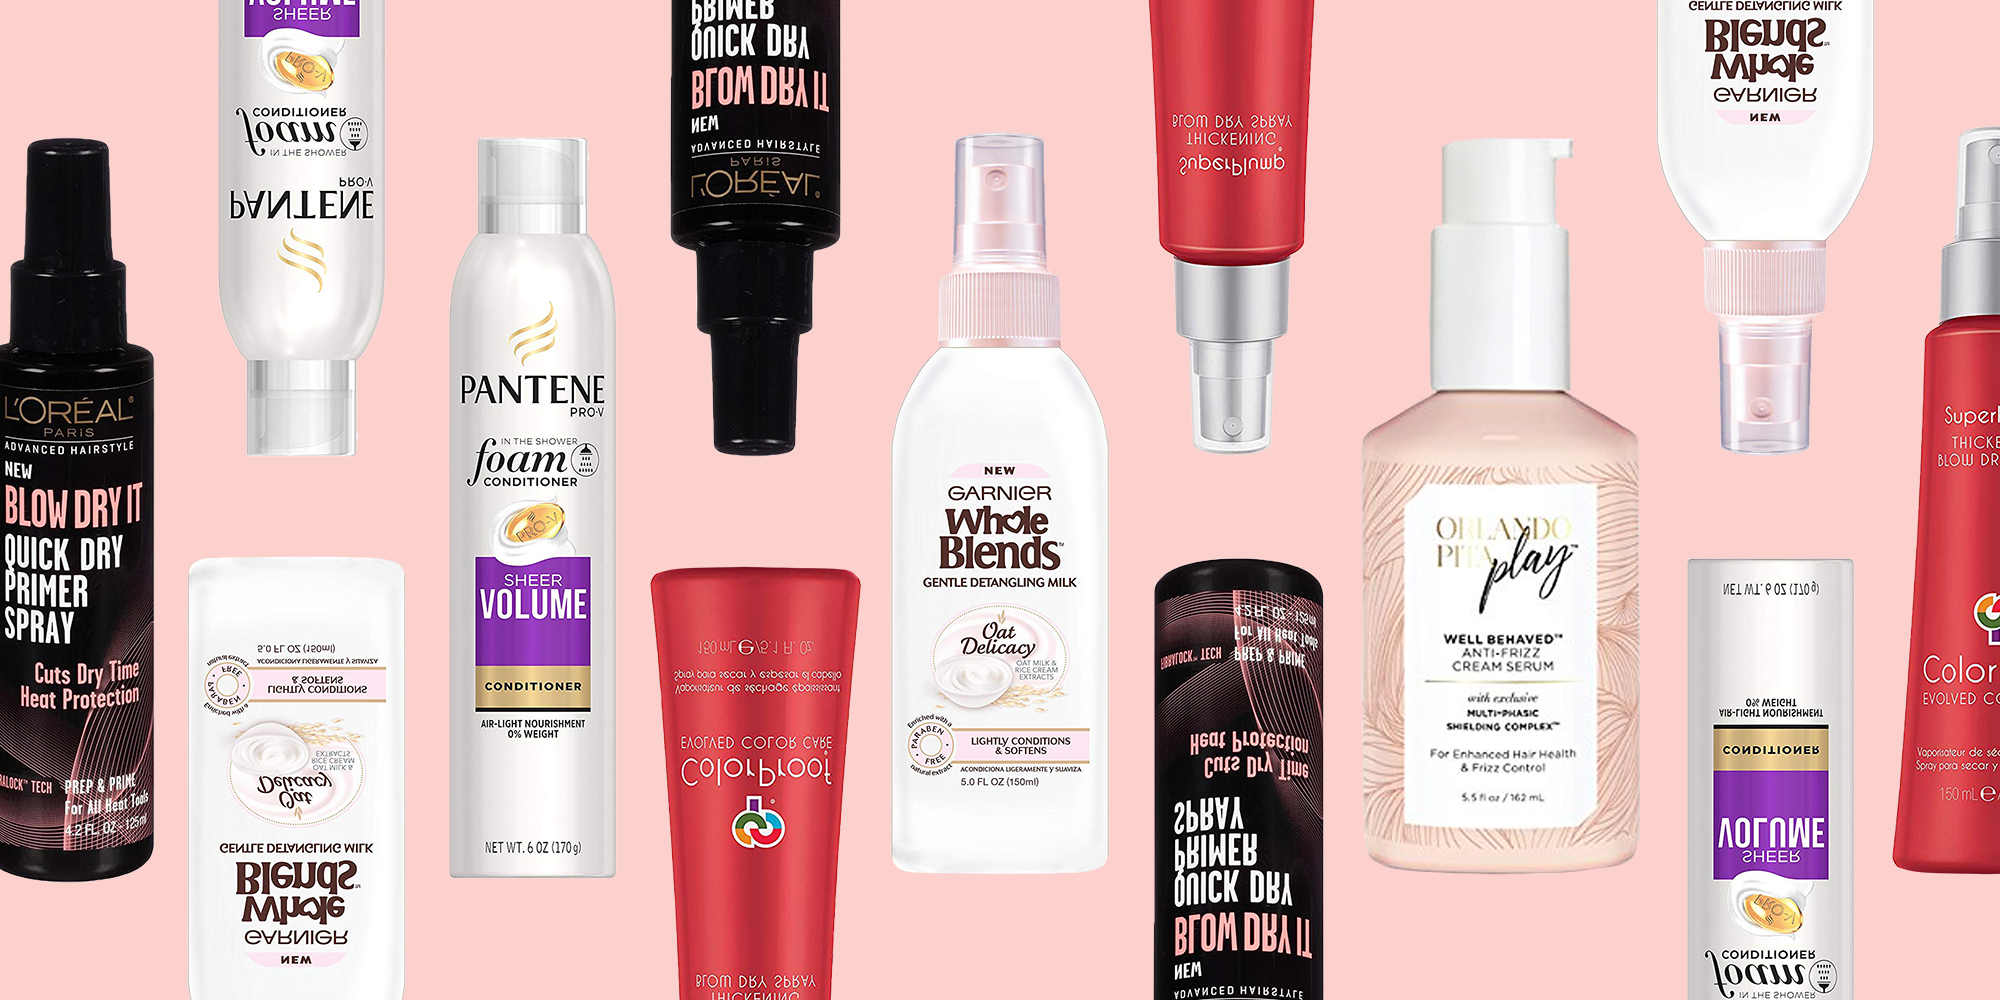 22 Best Hair Products of 2019 - Top Hair Care, Styling, and ...